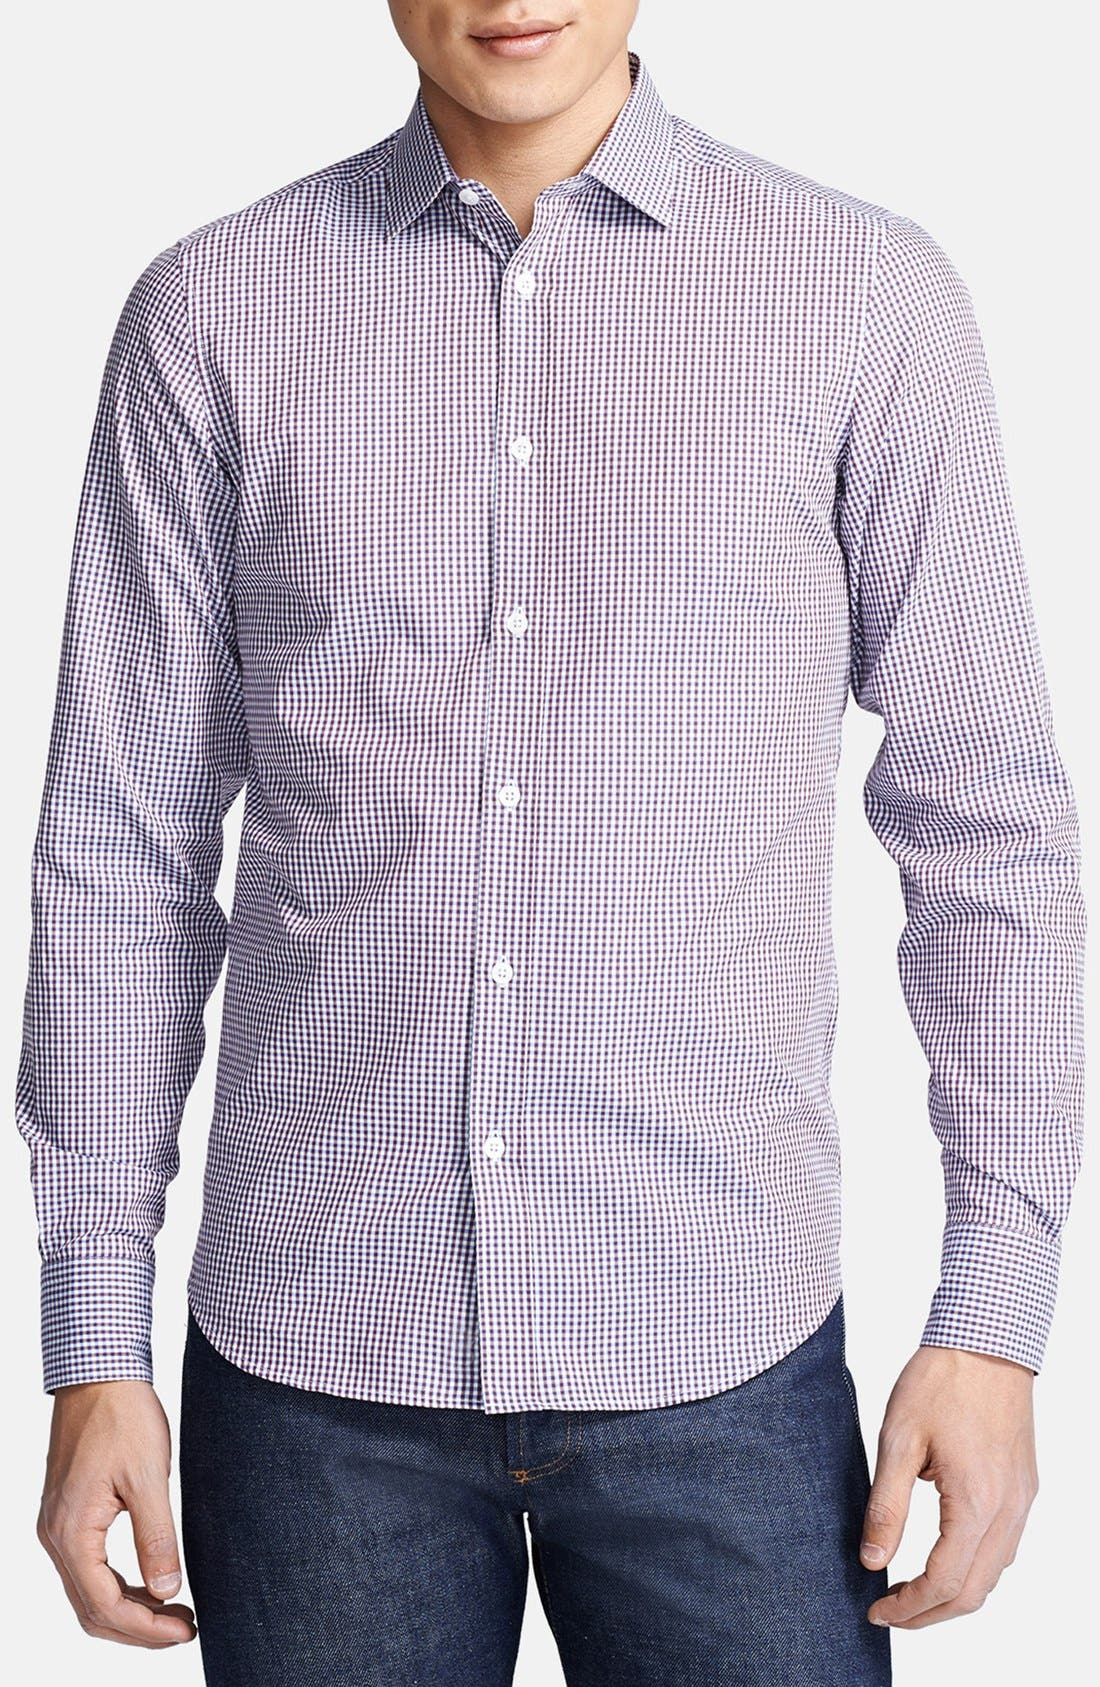 Alternate Image 1 Selected - Z Zegna Microcheck Sport Shirt